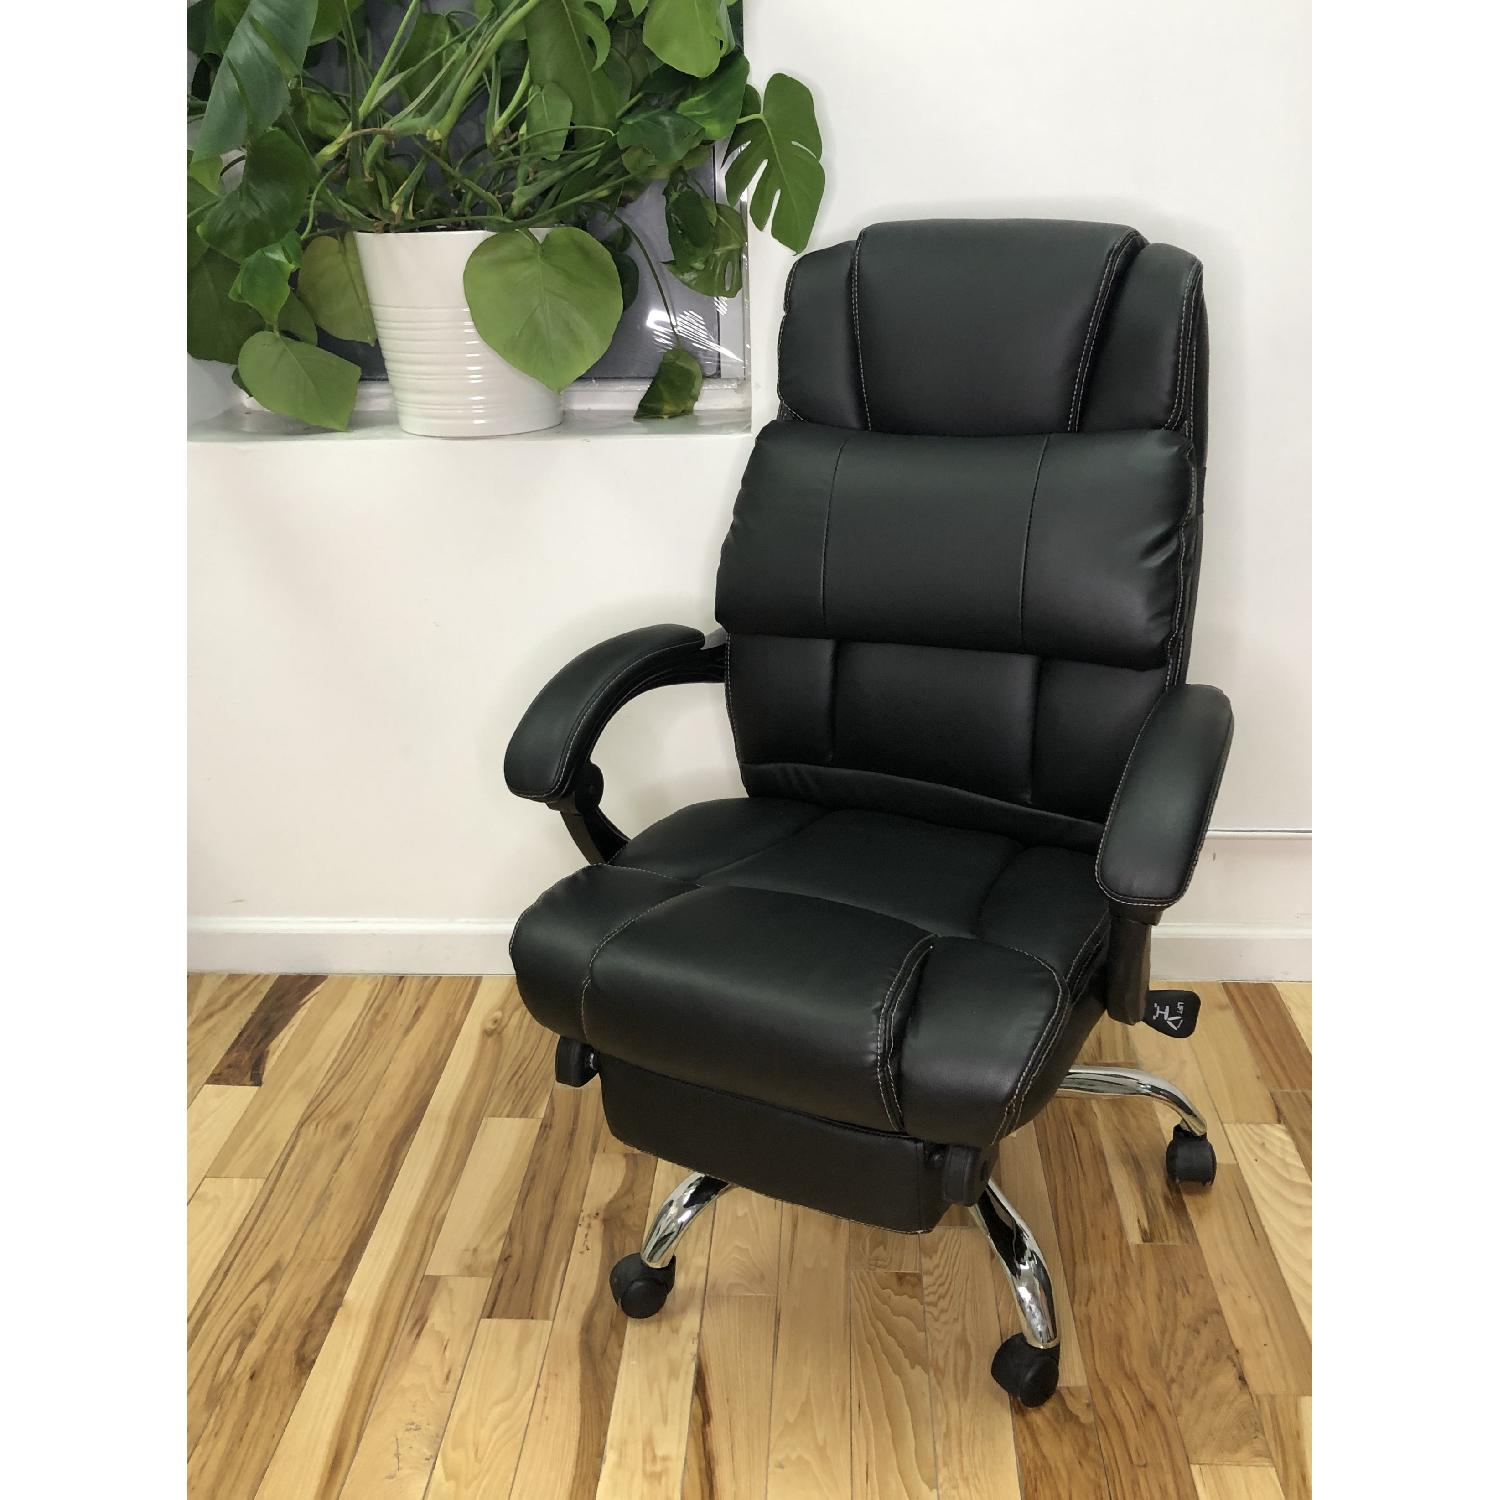 Merax Reclining Office/Gaming Chair-0